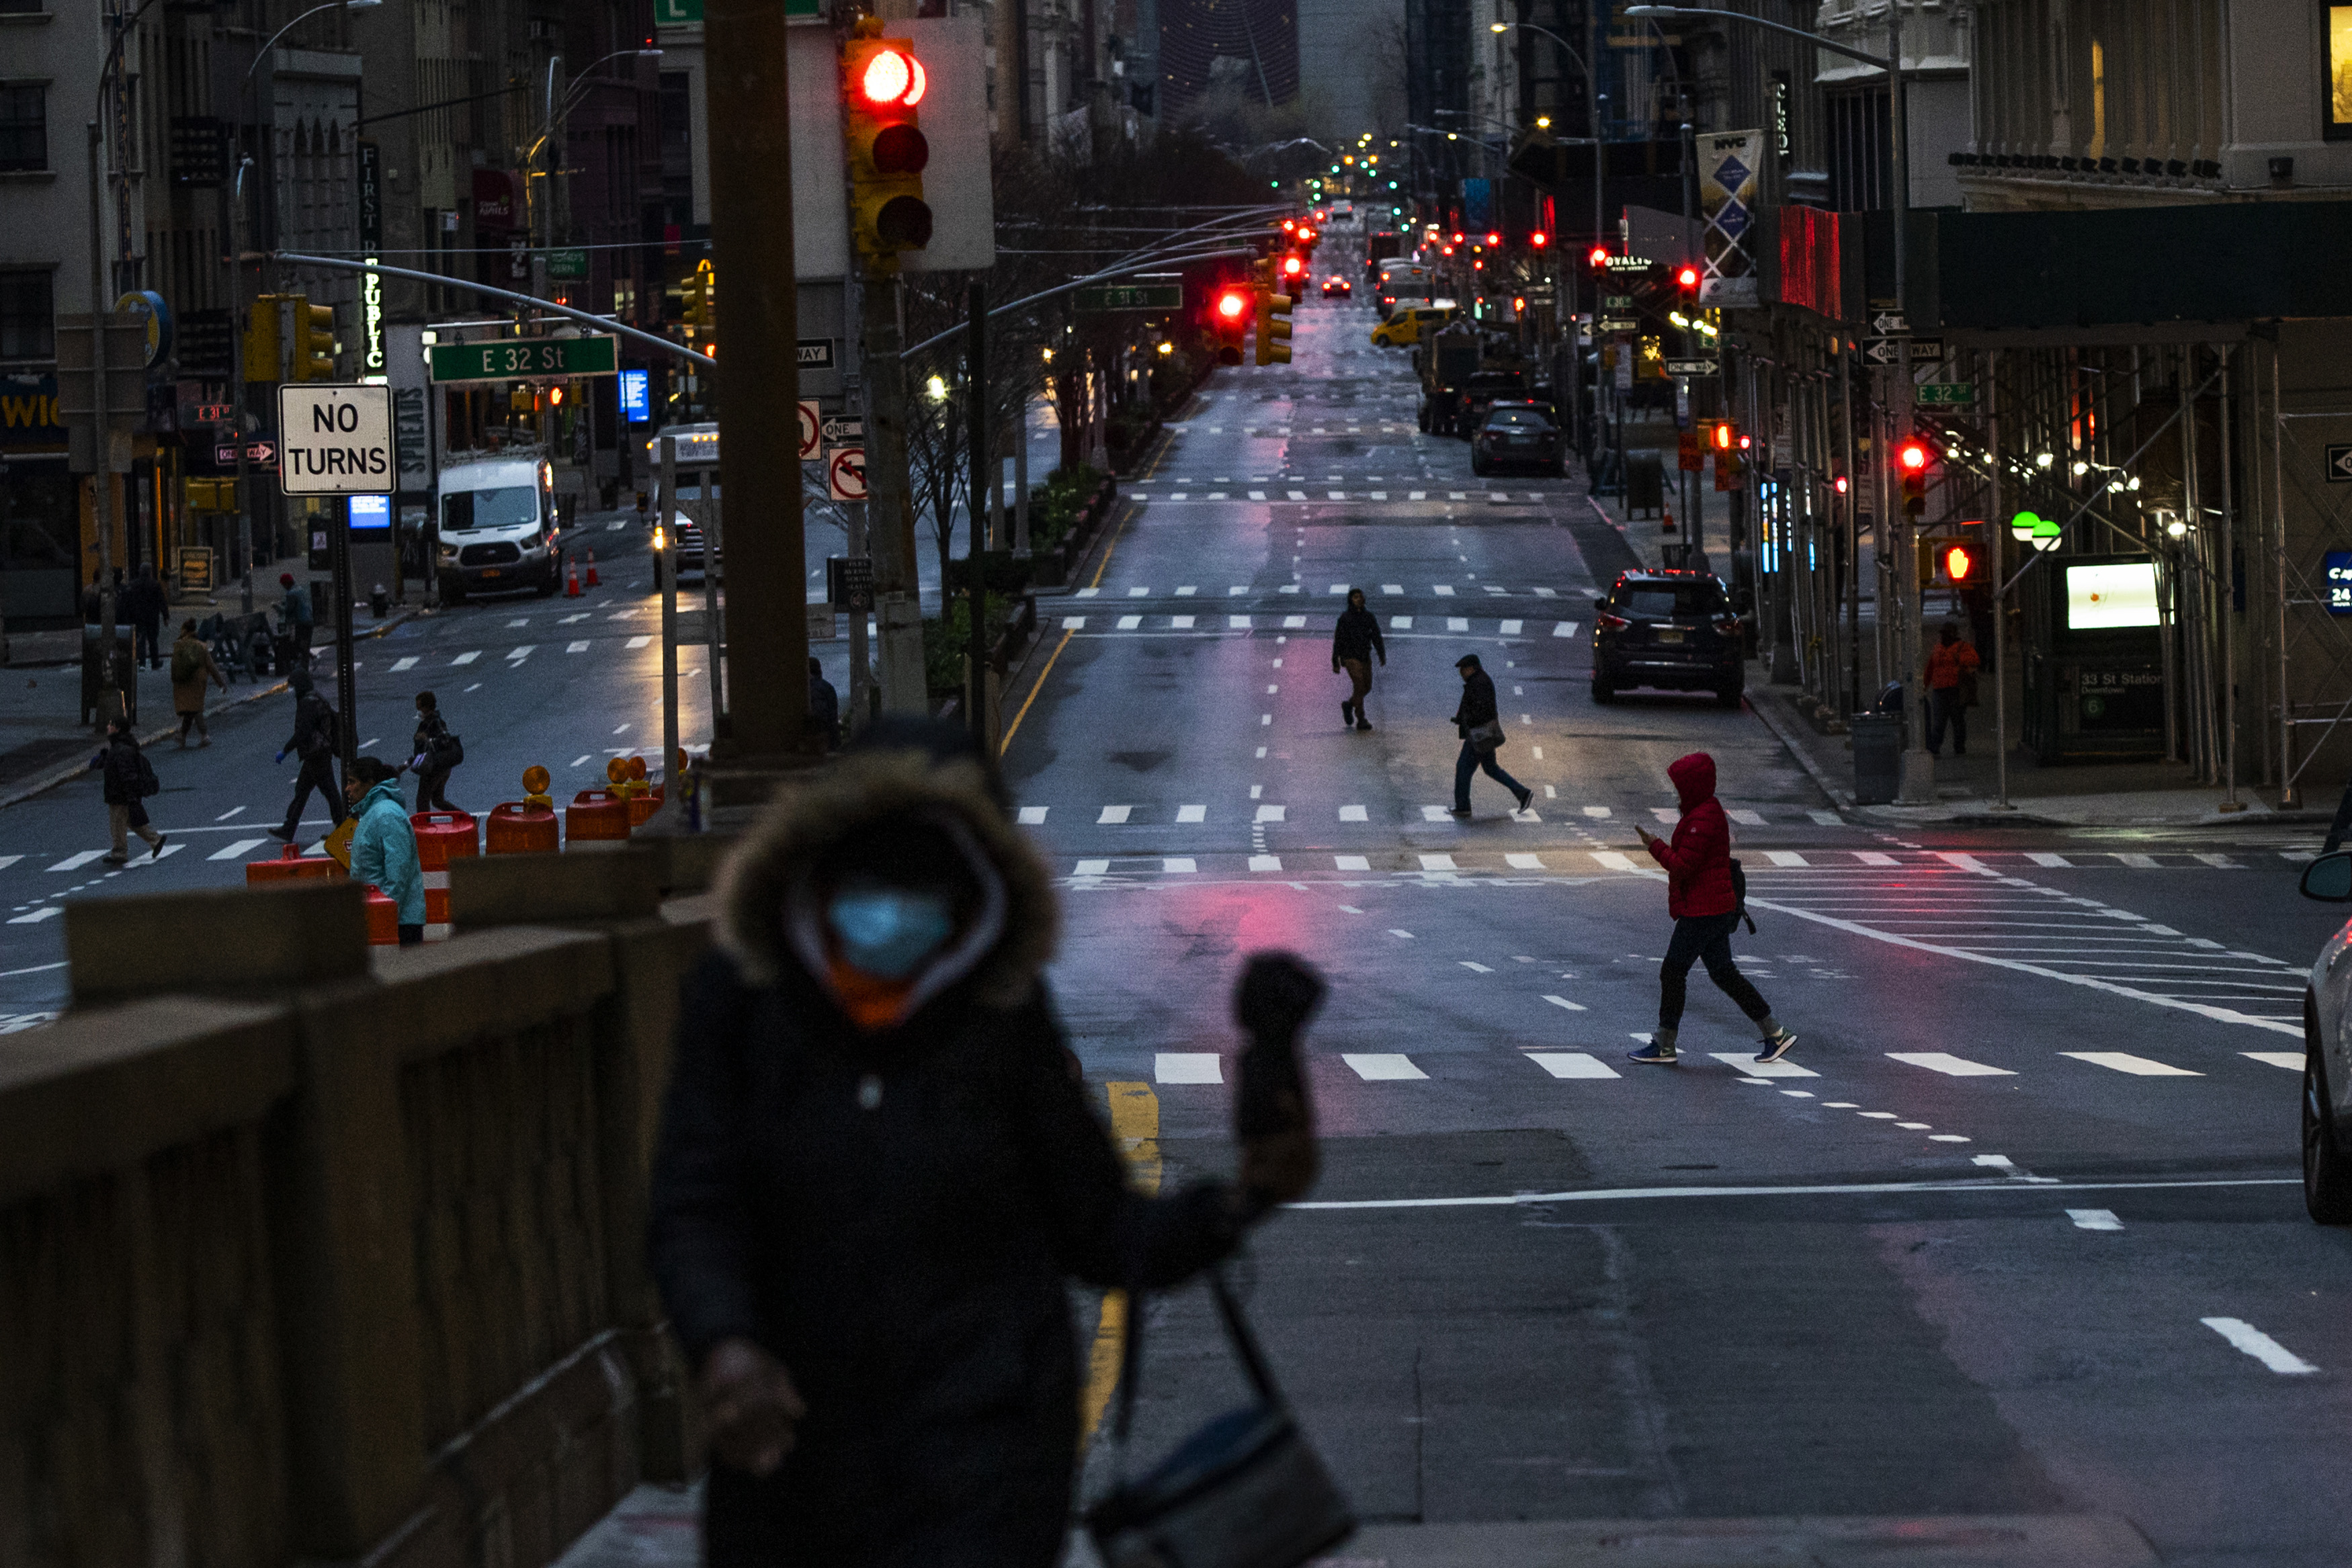 People cross Park Ave. after it was announced that some streets will be shut as lockdown continues in response to the COVID-19 outbreak on March 27, 2020 in New York City.